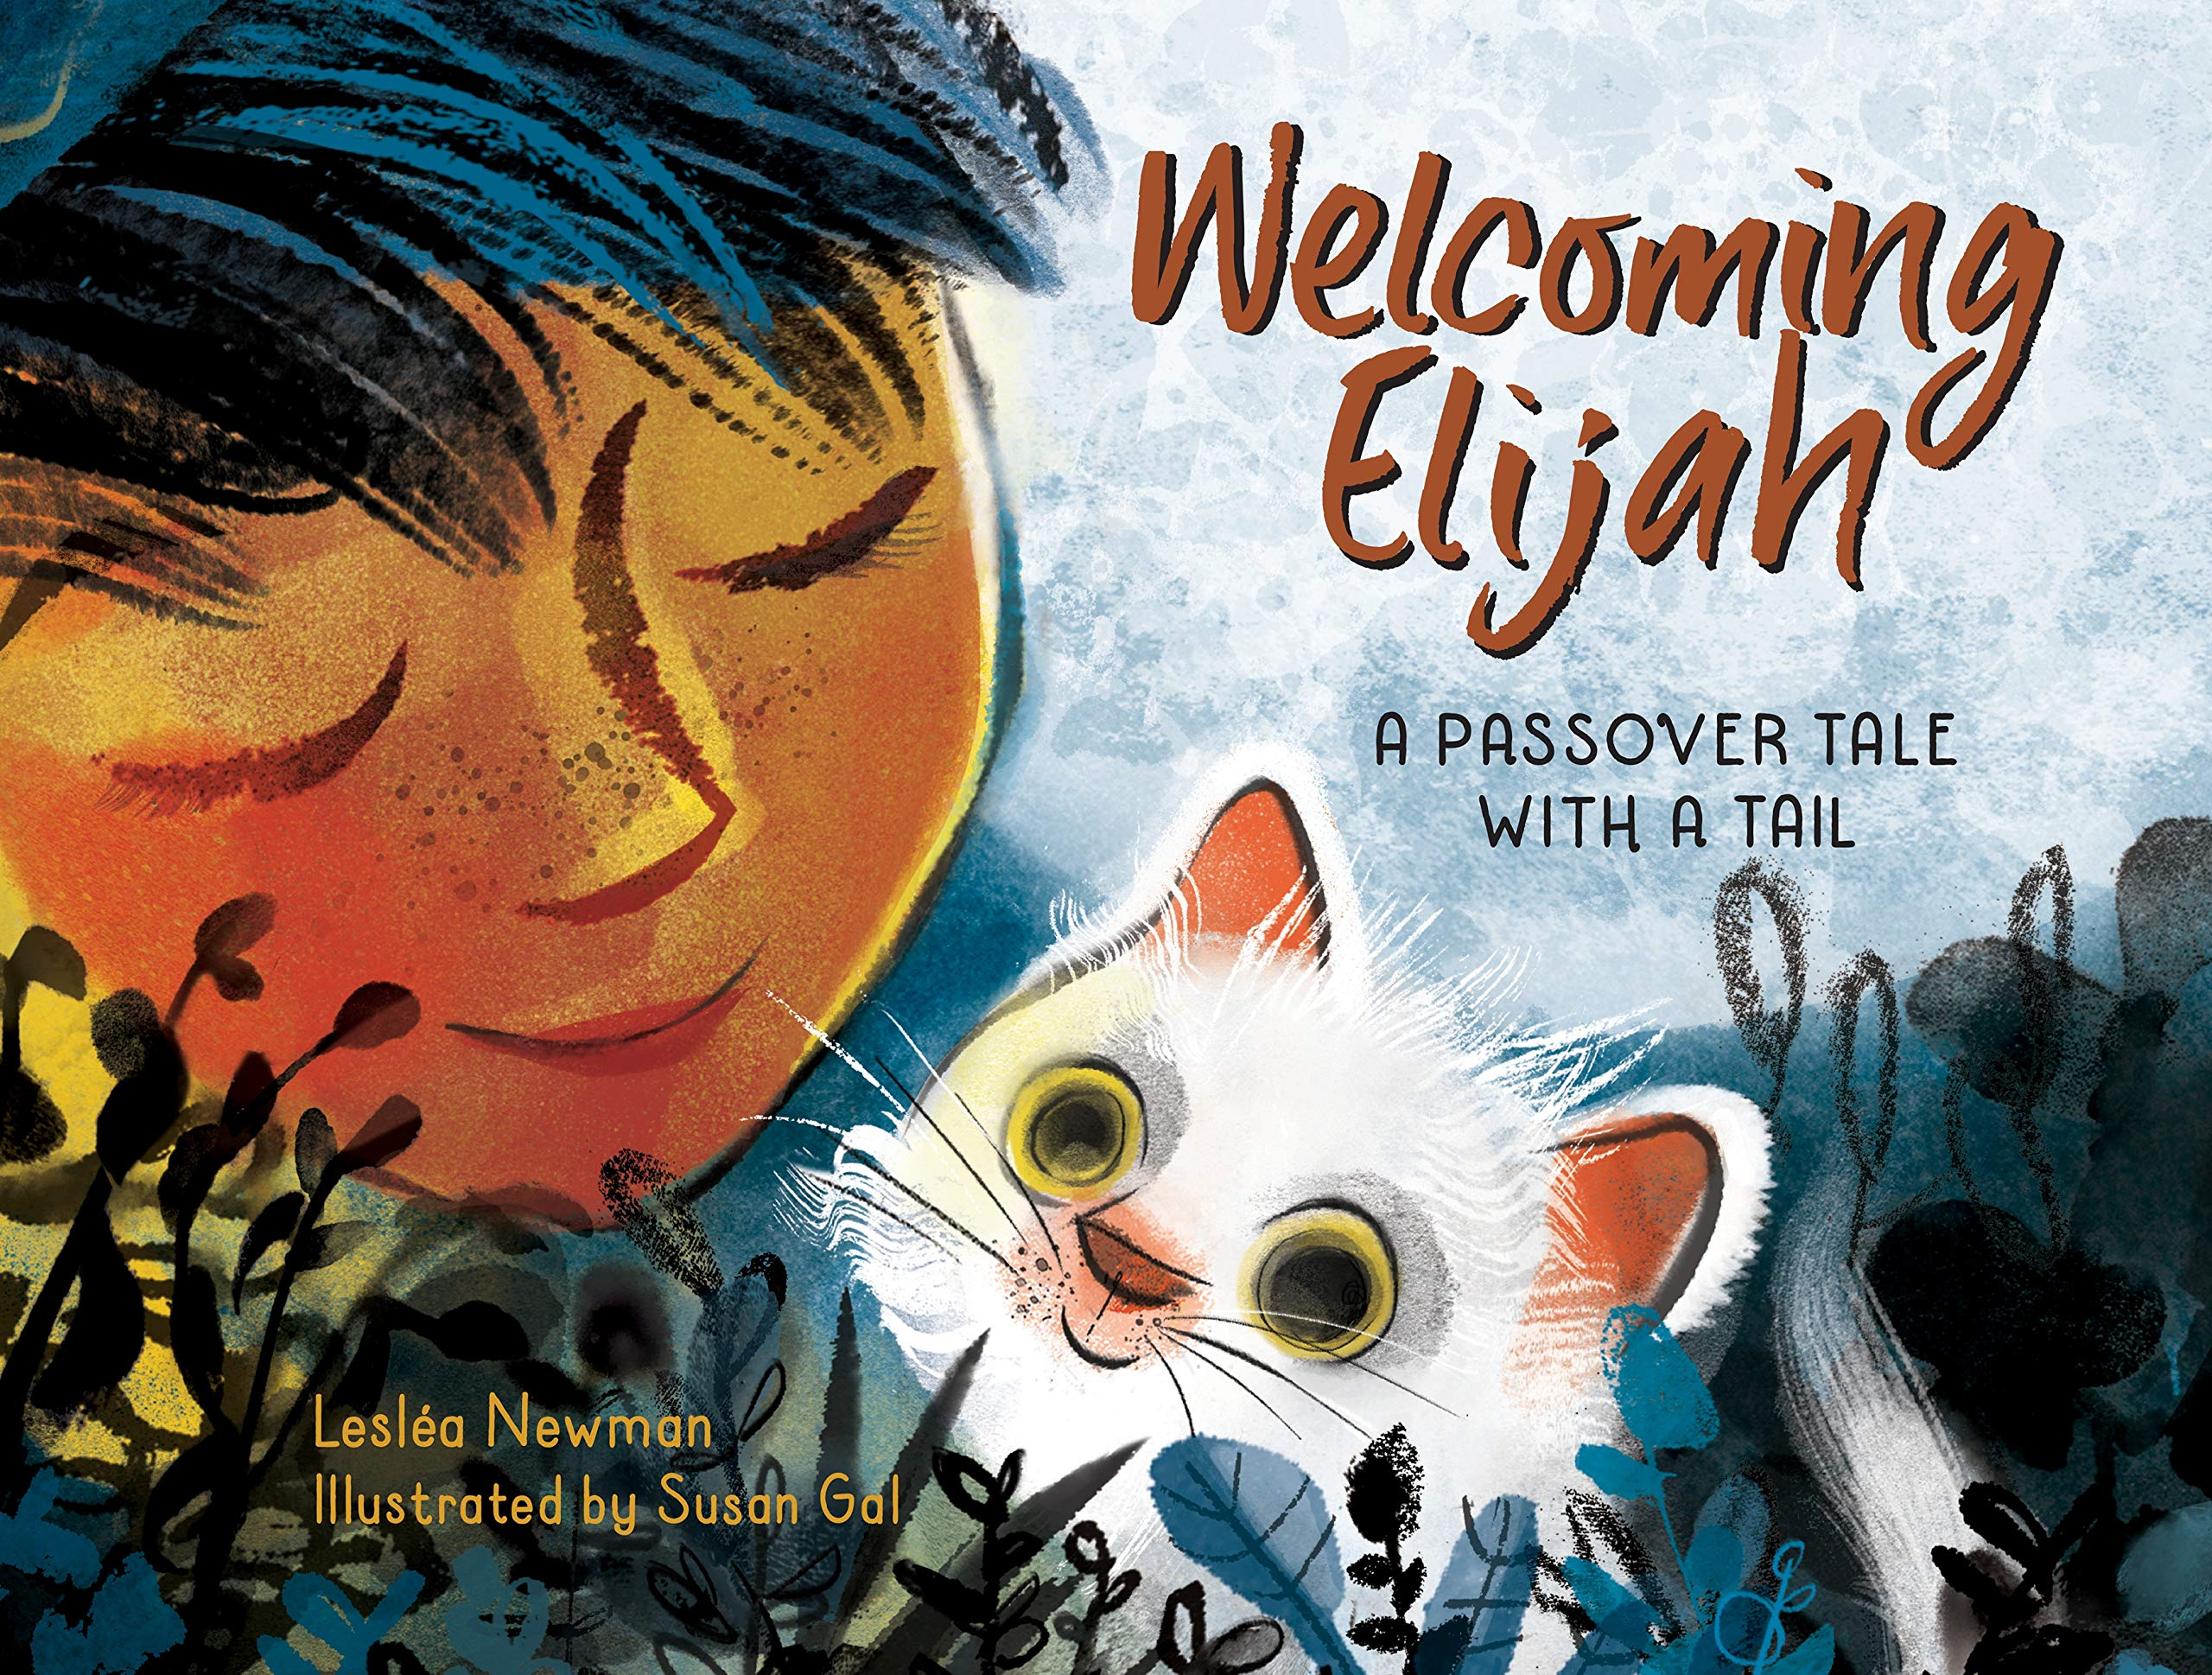 Image result for welcoming elijah a passover tale with a tail